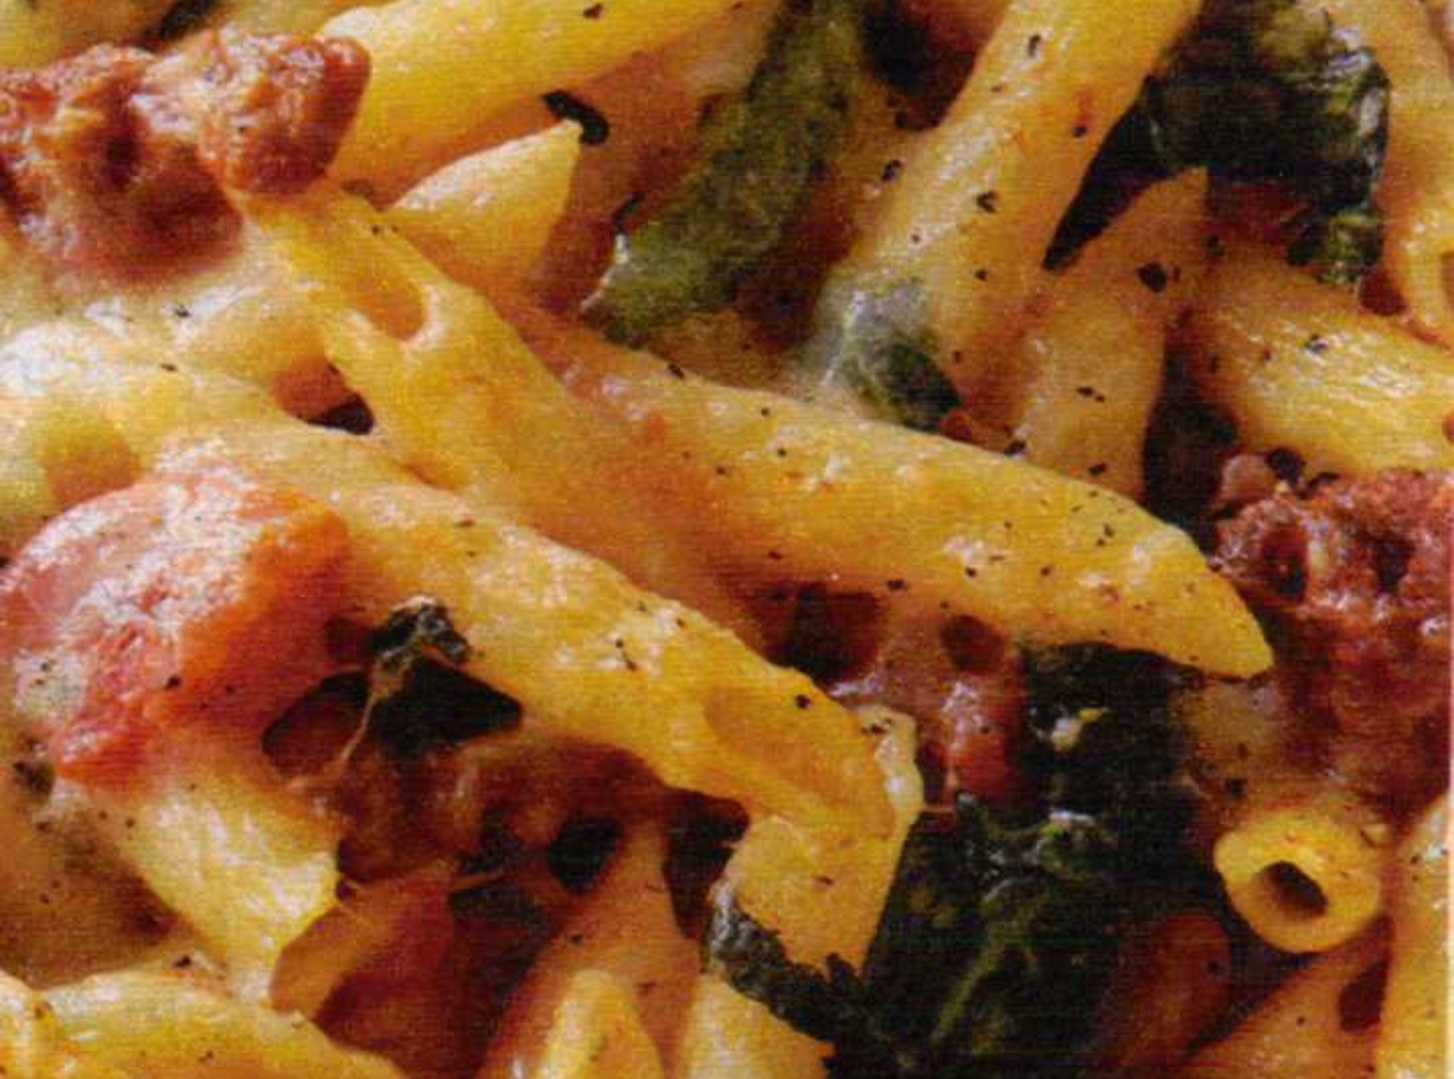 Baked Ziti with Broccoli Rabe and Hot Italian Saus Recipe